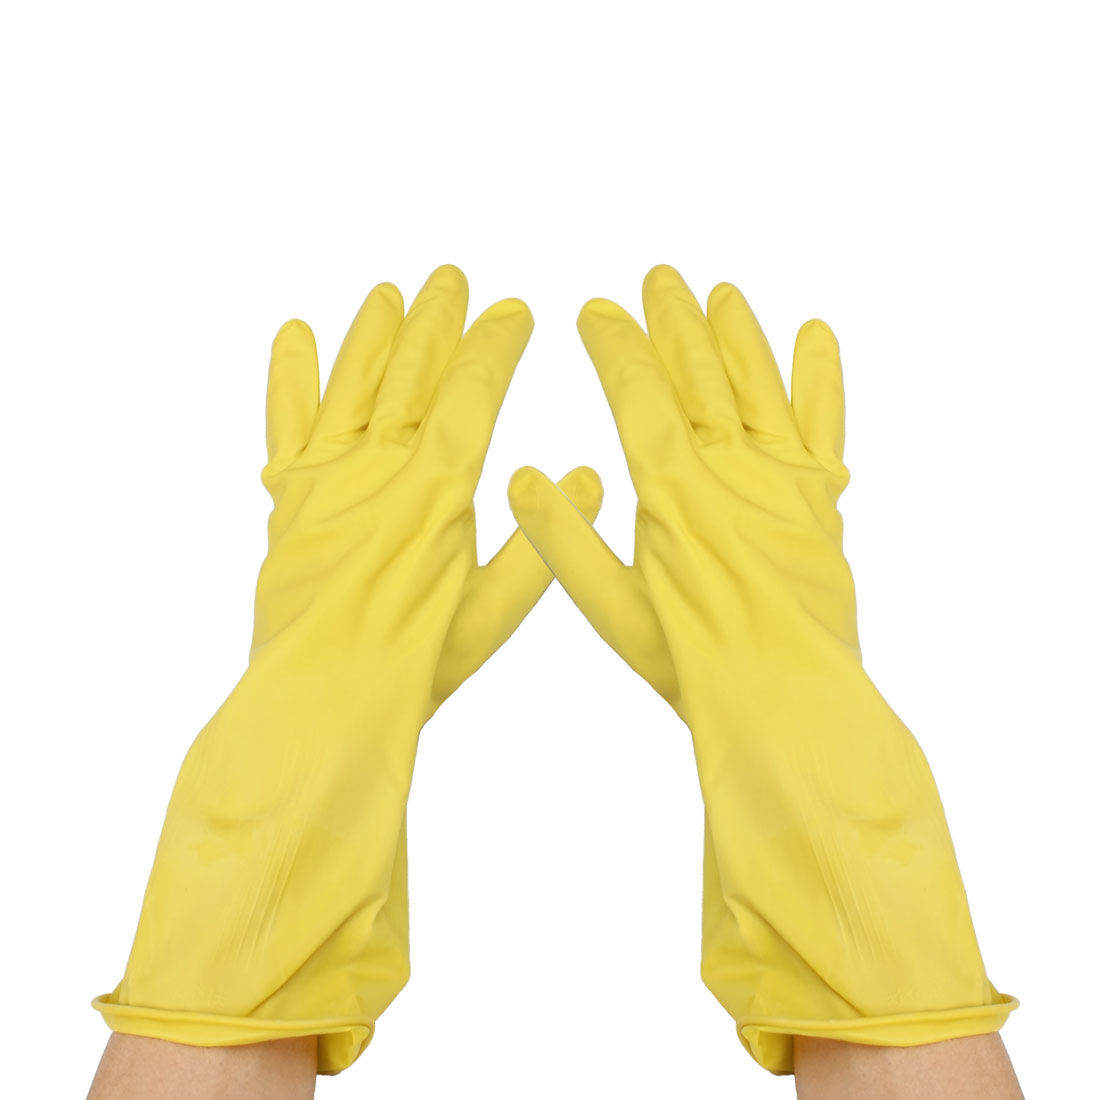 "Houseworking 12.8"" Long Yellow Latex Water Resistant Washing Gloves Pair"